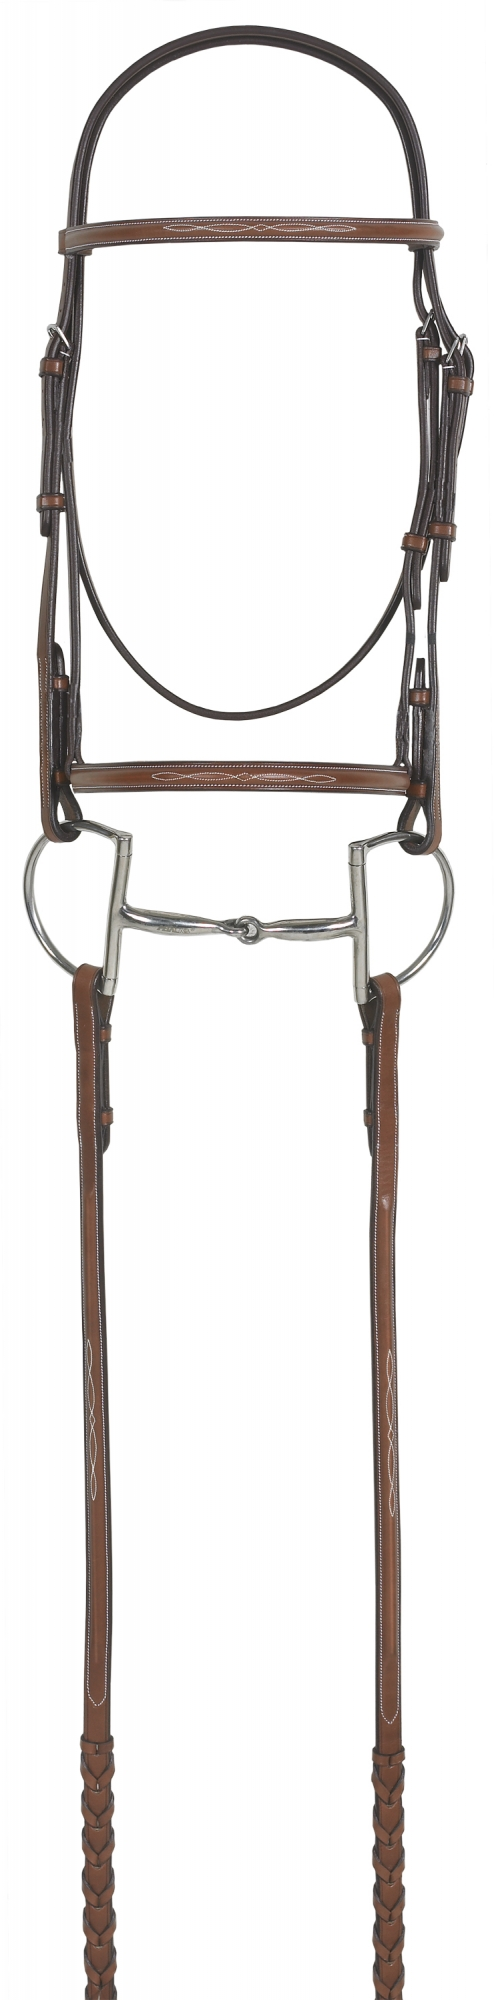 Rodrigo Pessoa® Fancy Raised Bridle w/ Raised Laced Reins